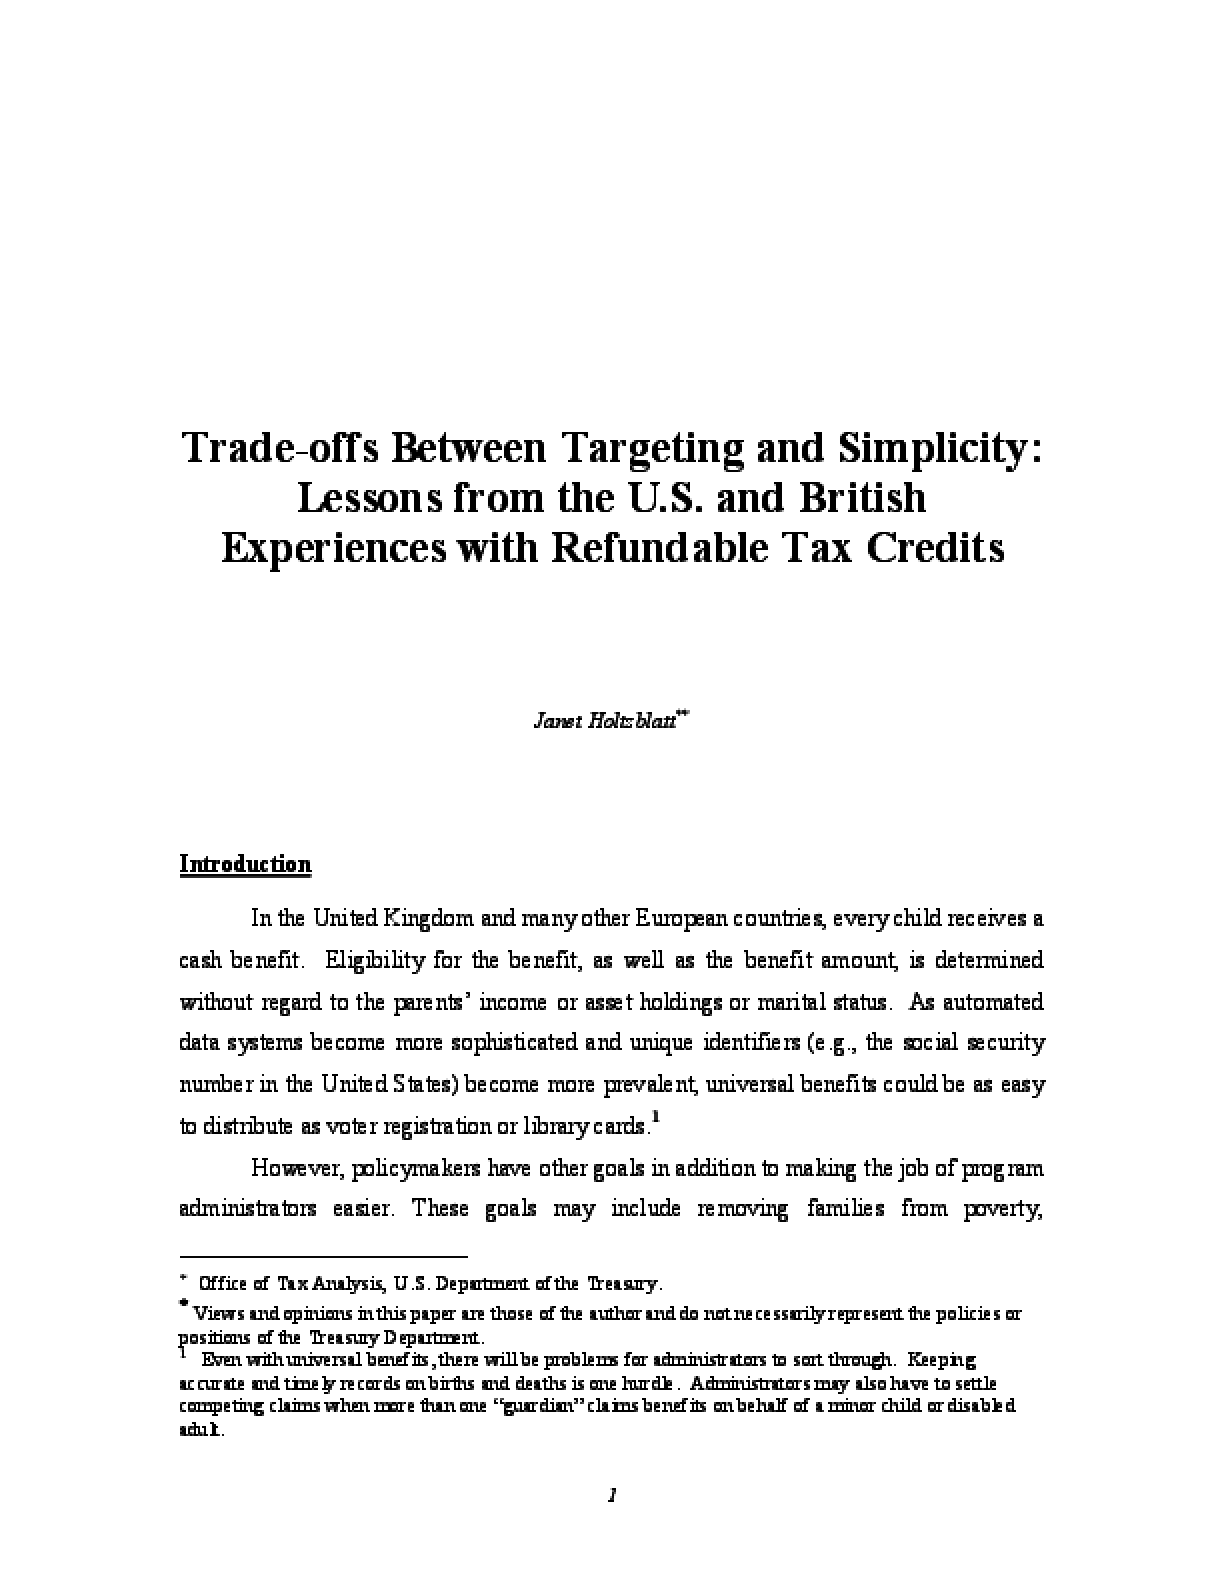 Trade-offs Between Targeting and Simplicity: Lessons from the U.S. and British Experiences with Refundable Tax Credits